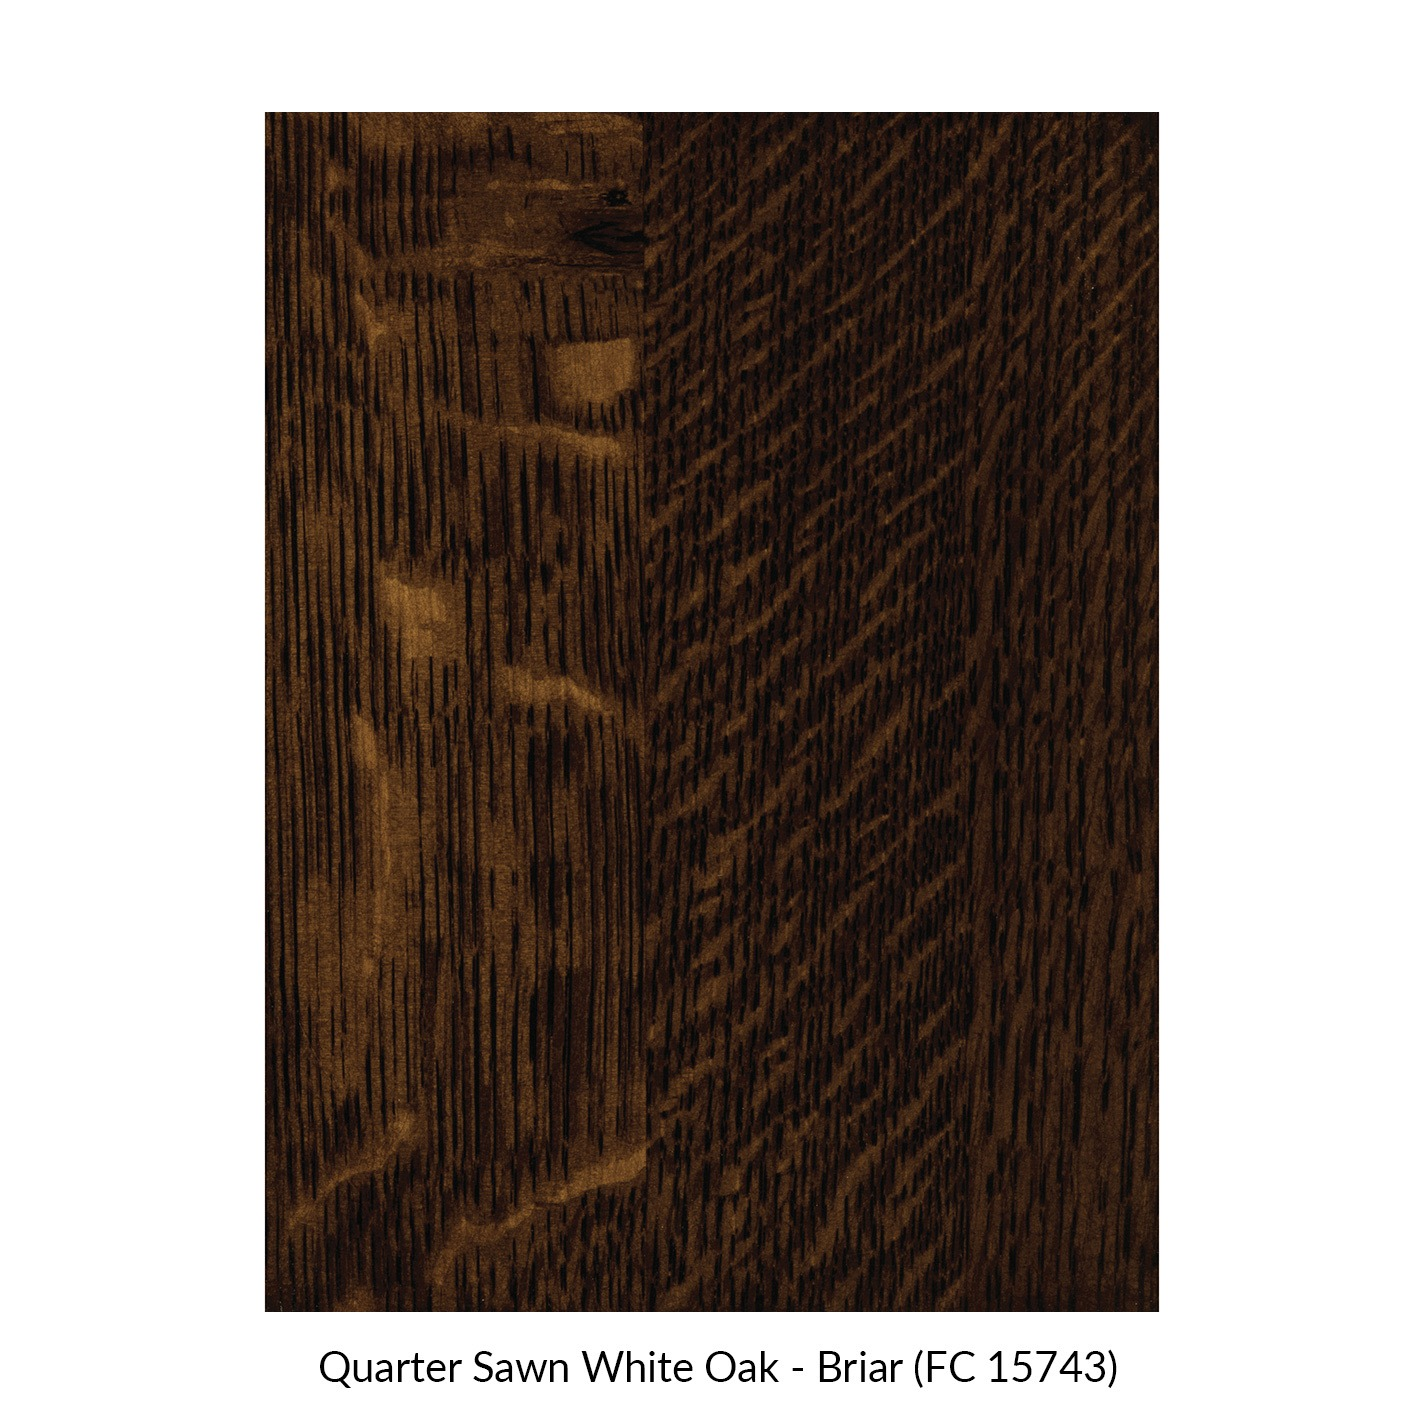 spectrum-quarter-sawn-white-oak-briar-fc-15743.jpg